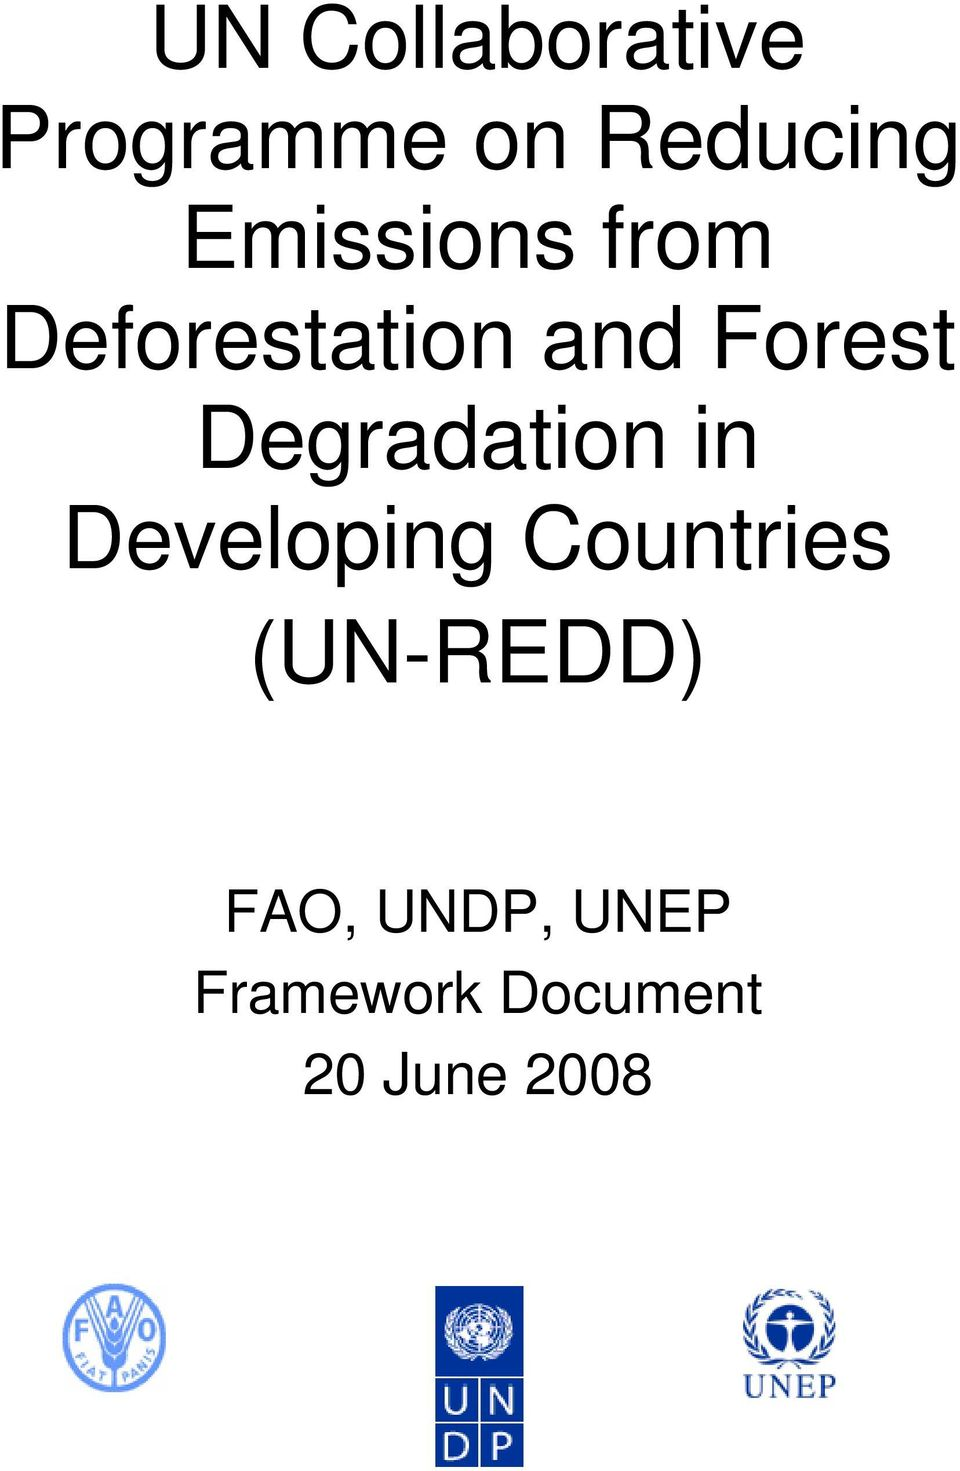 Degradation in Developing Countries